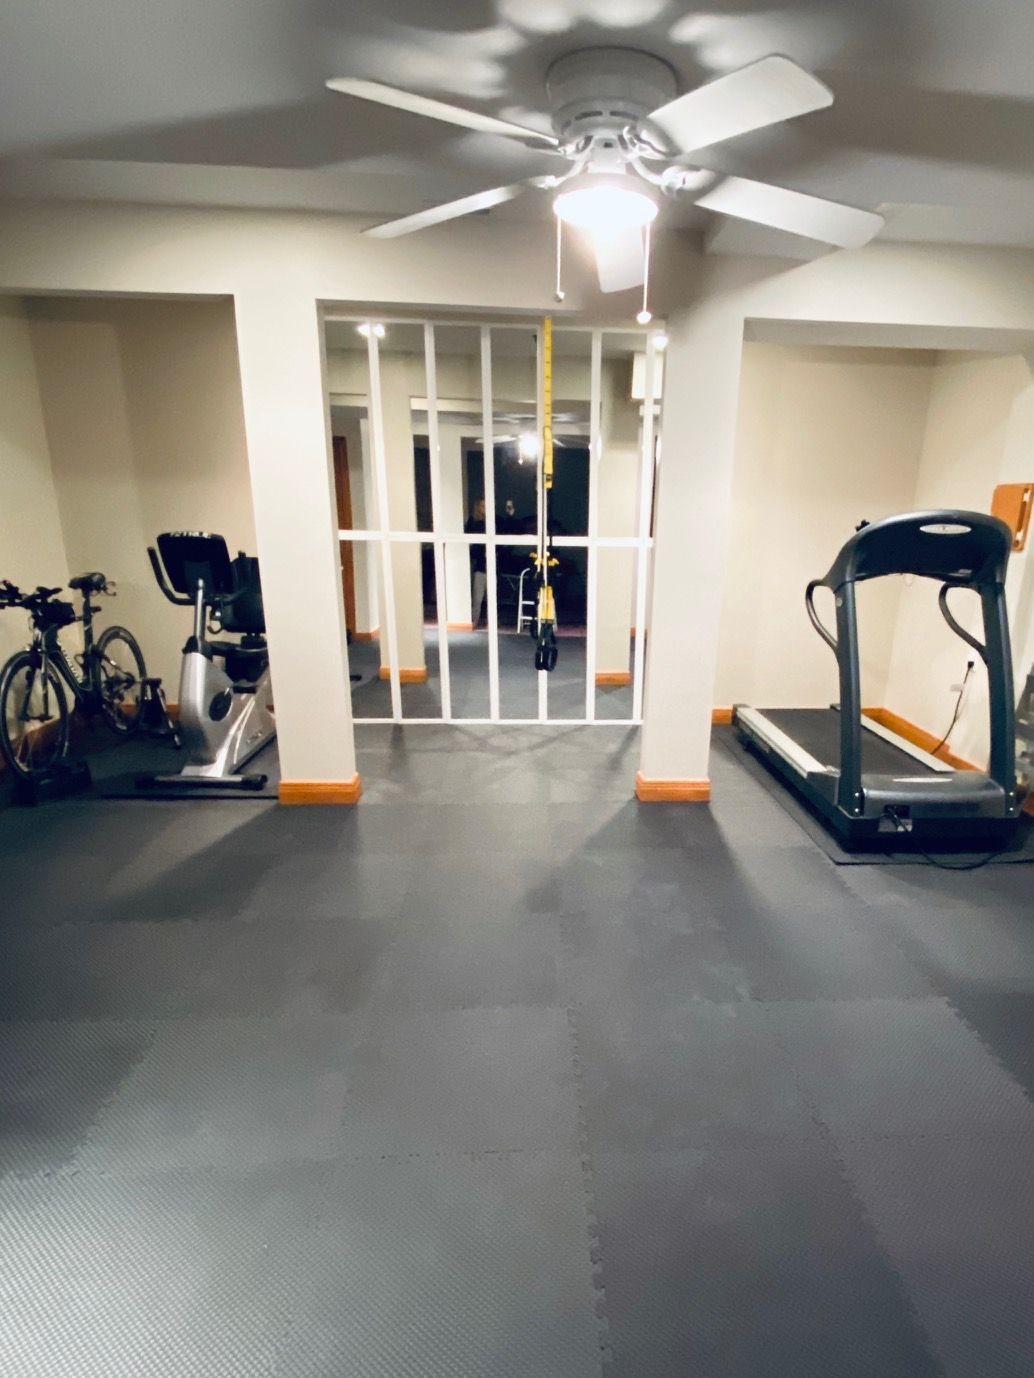 Diy Mirror Wall In Home Gym In 2020 Gym Room At Home Home Gym Decor Home Theater Rooms